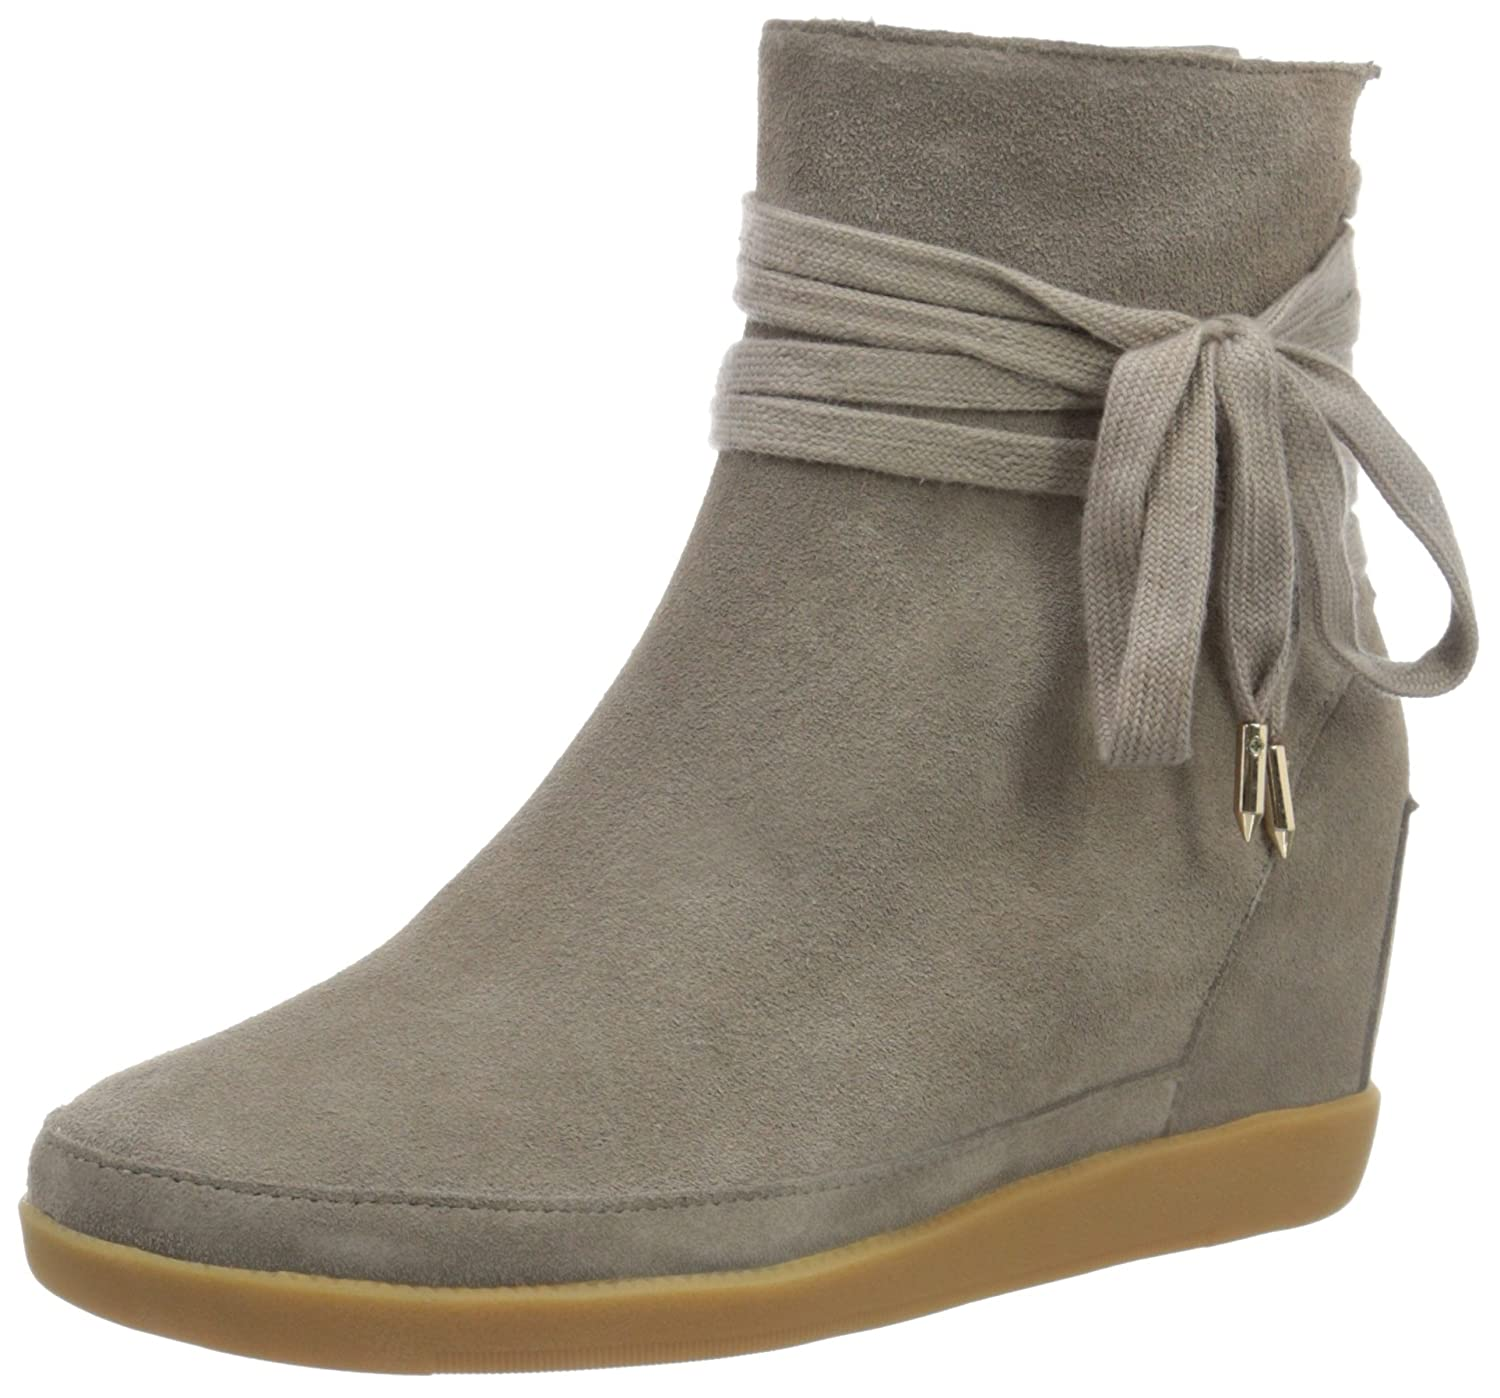 Shoe The Bear Emmy Star S, Botines para Mujer Marrón (160 Taupe)